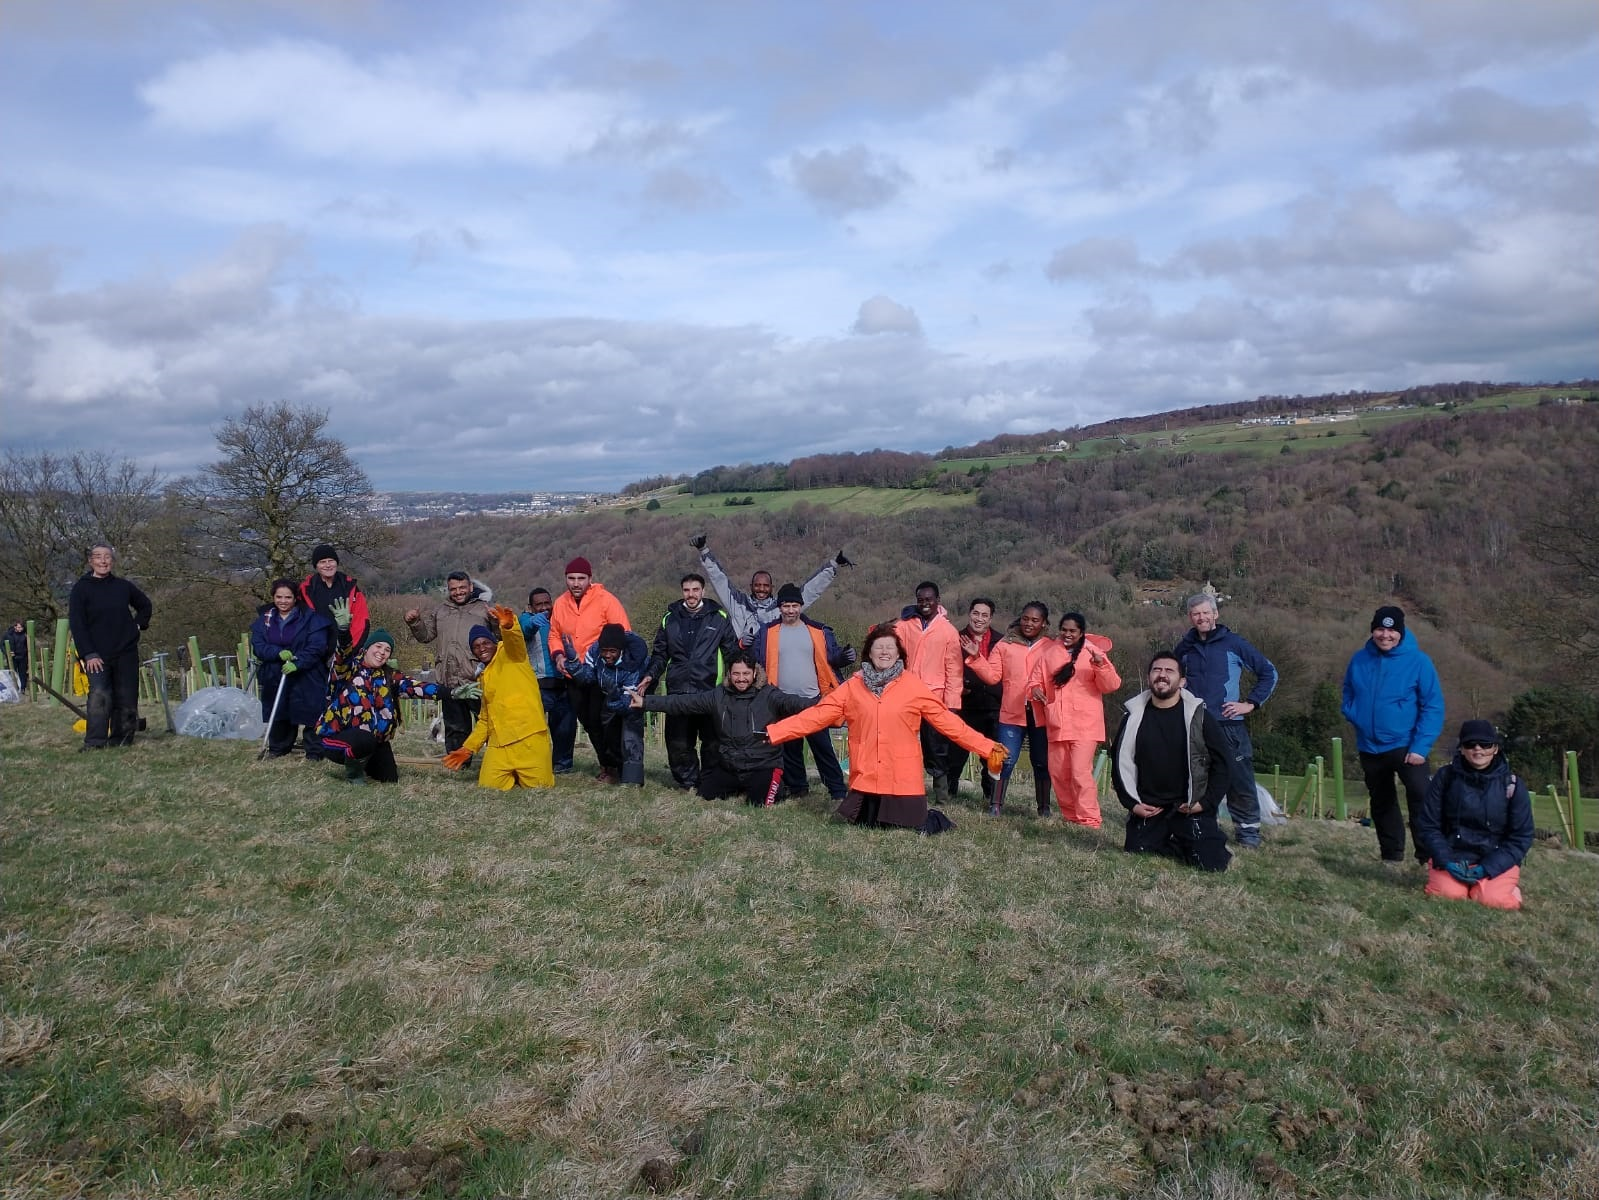 Group of people on a hill planting trees